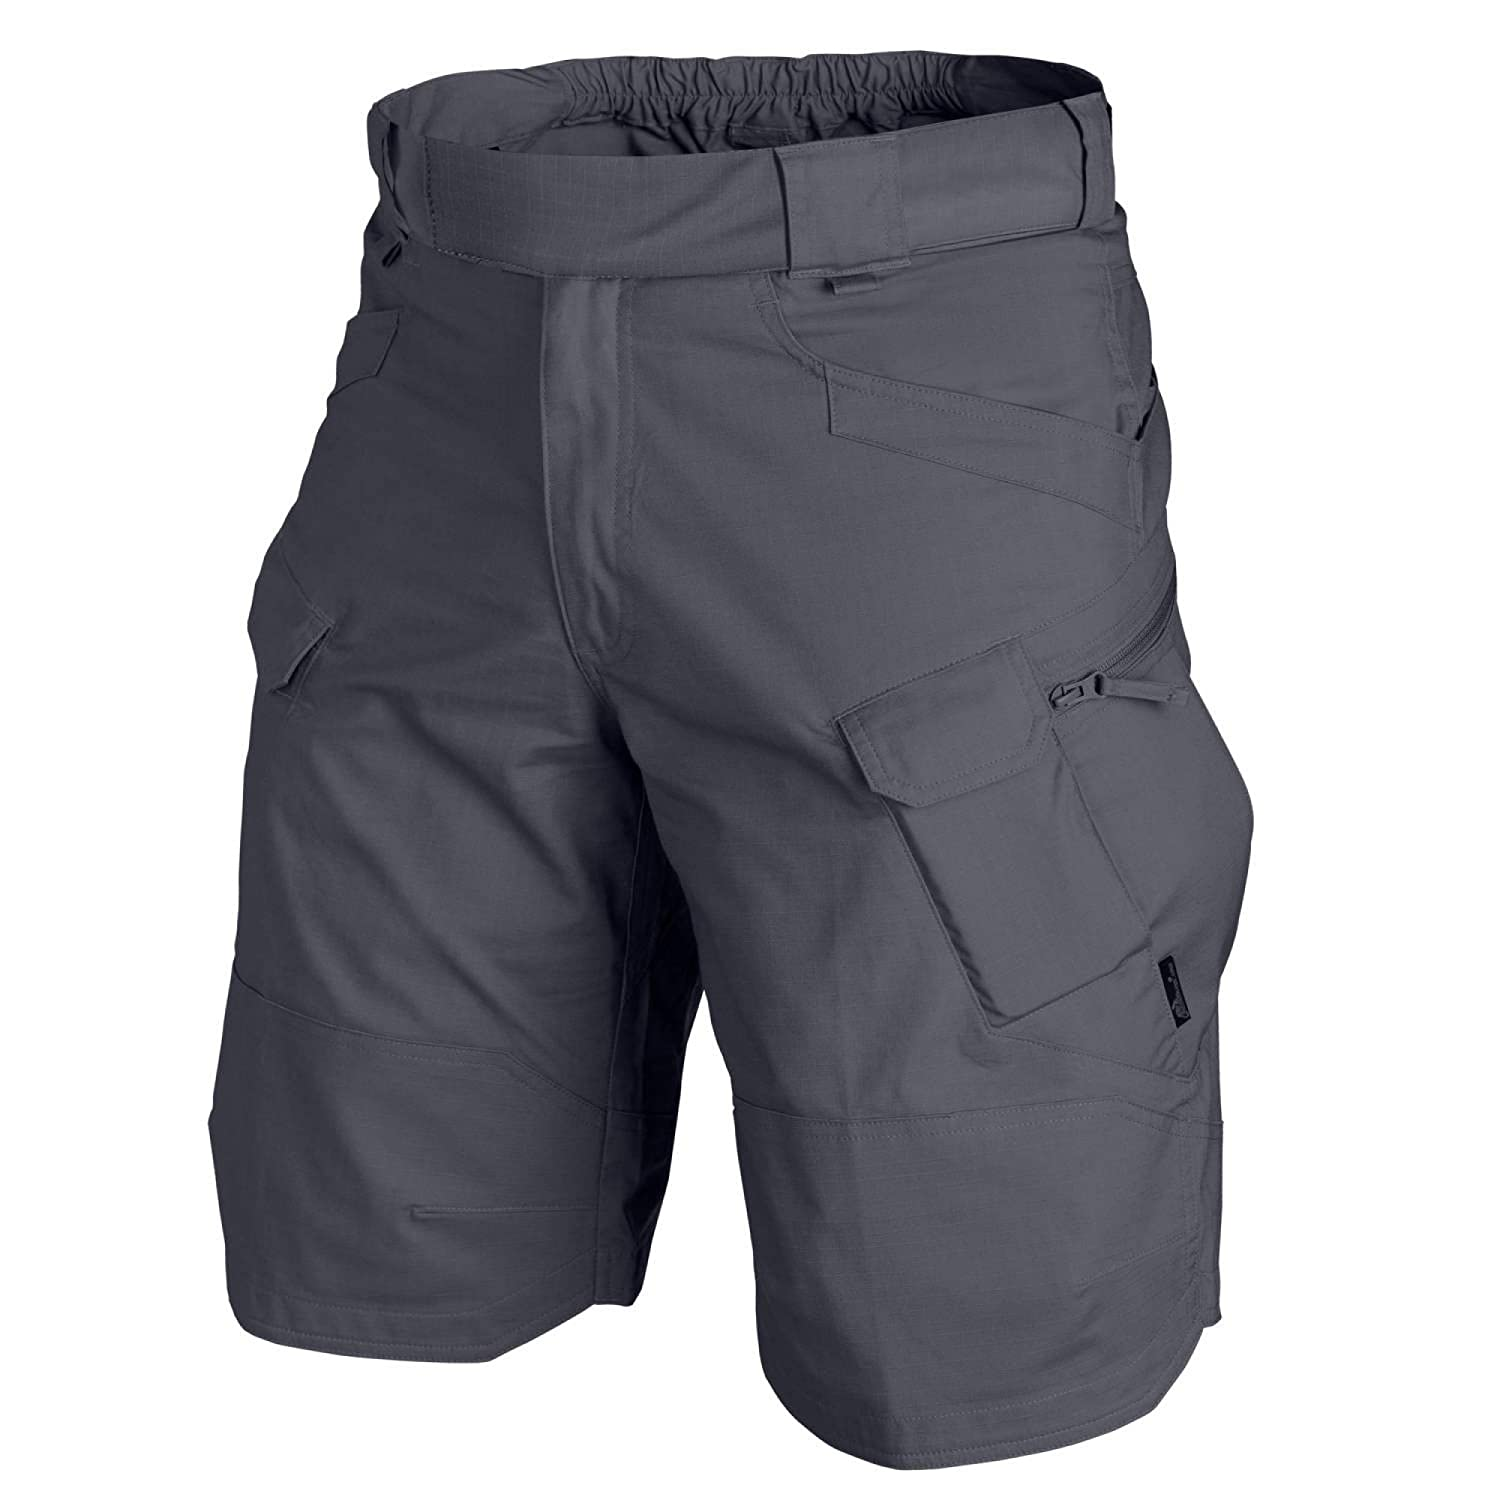 TALLA 3XL. 'Urban Tactical Pantalones Cortos® 11 – Polialgodón Ripstop – Shadow Grey